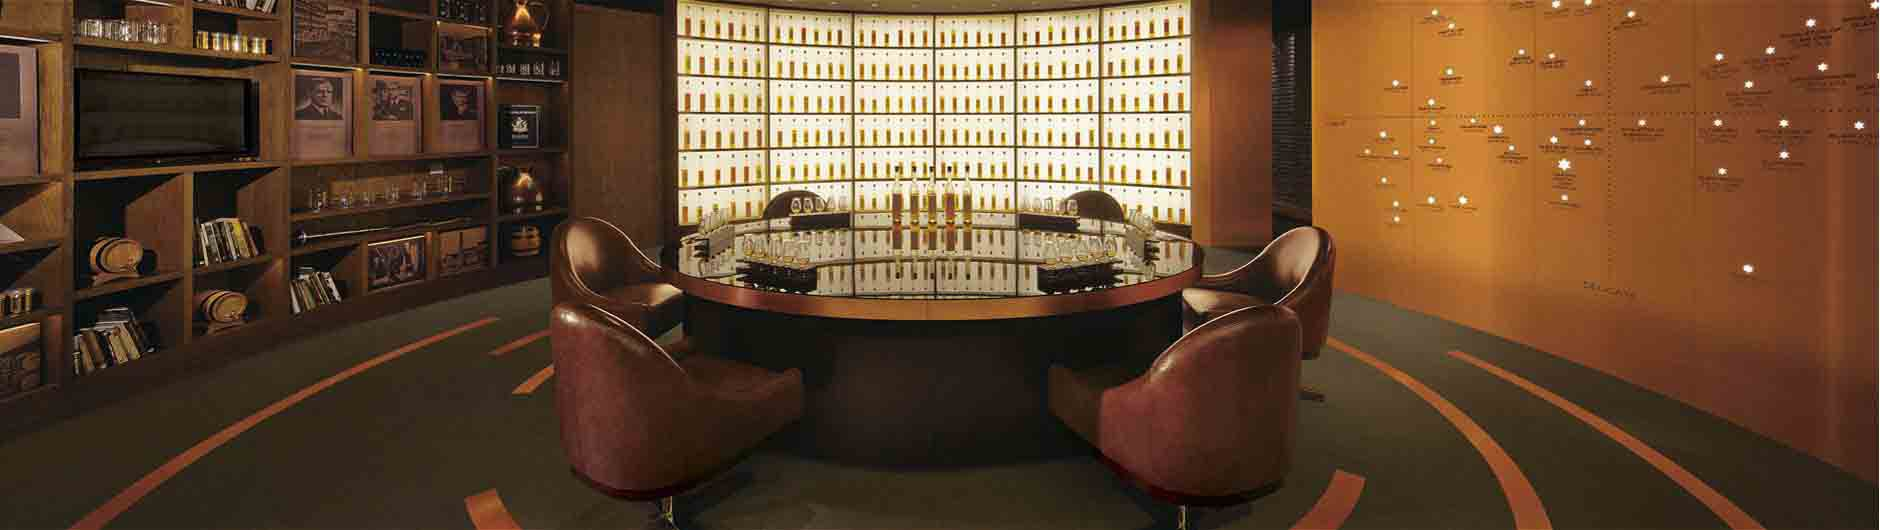 Alexander Walker Blending Room at Johnnie Walker House Beijing